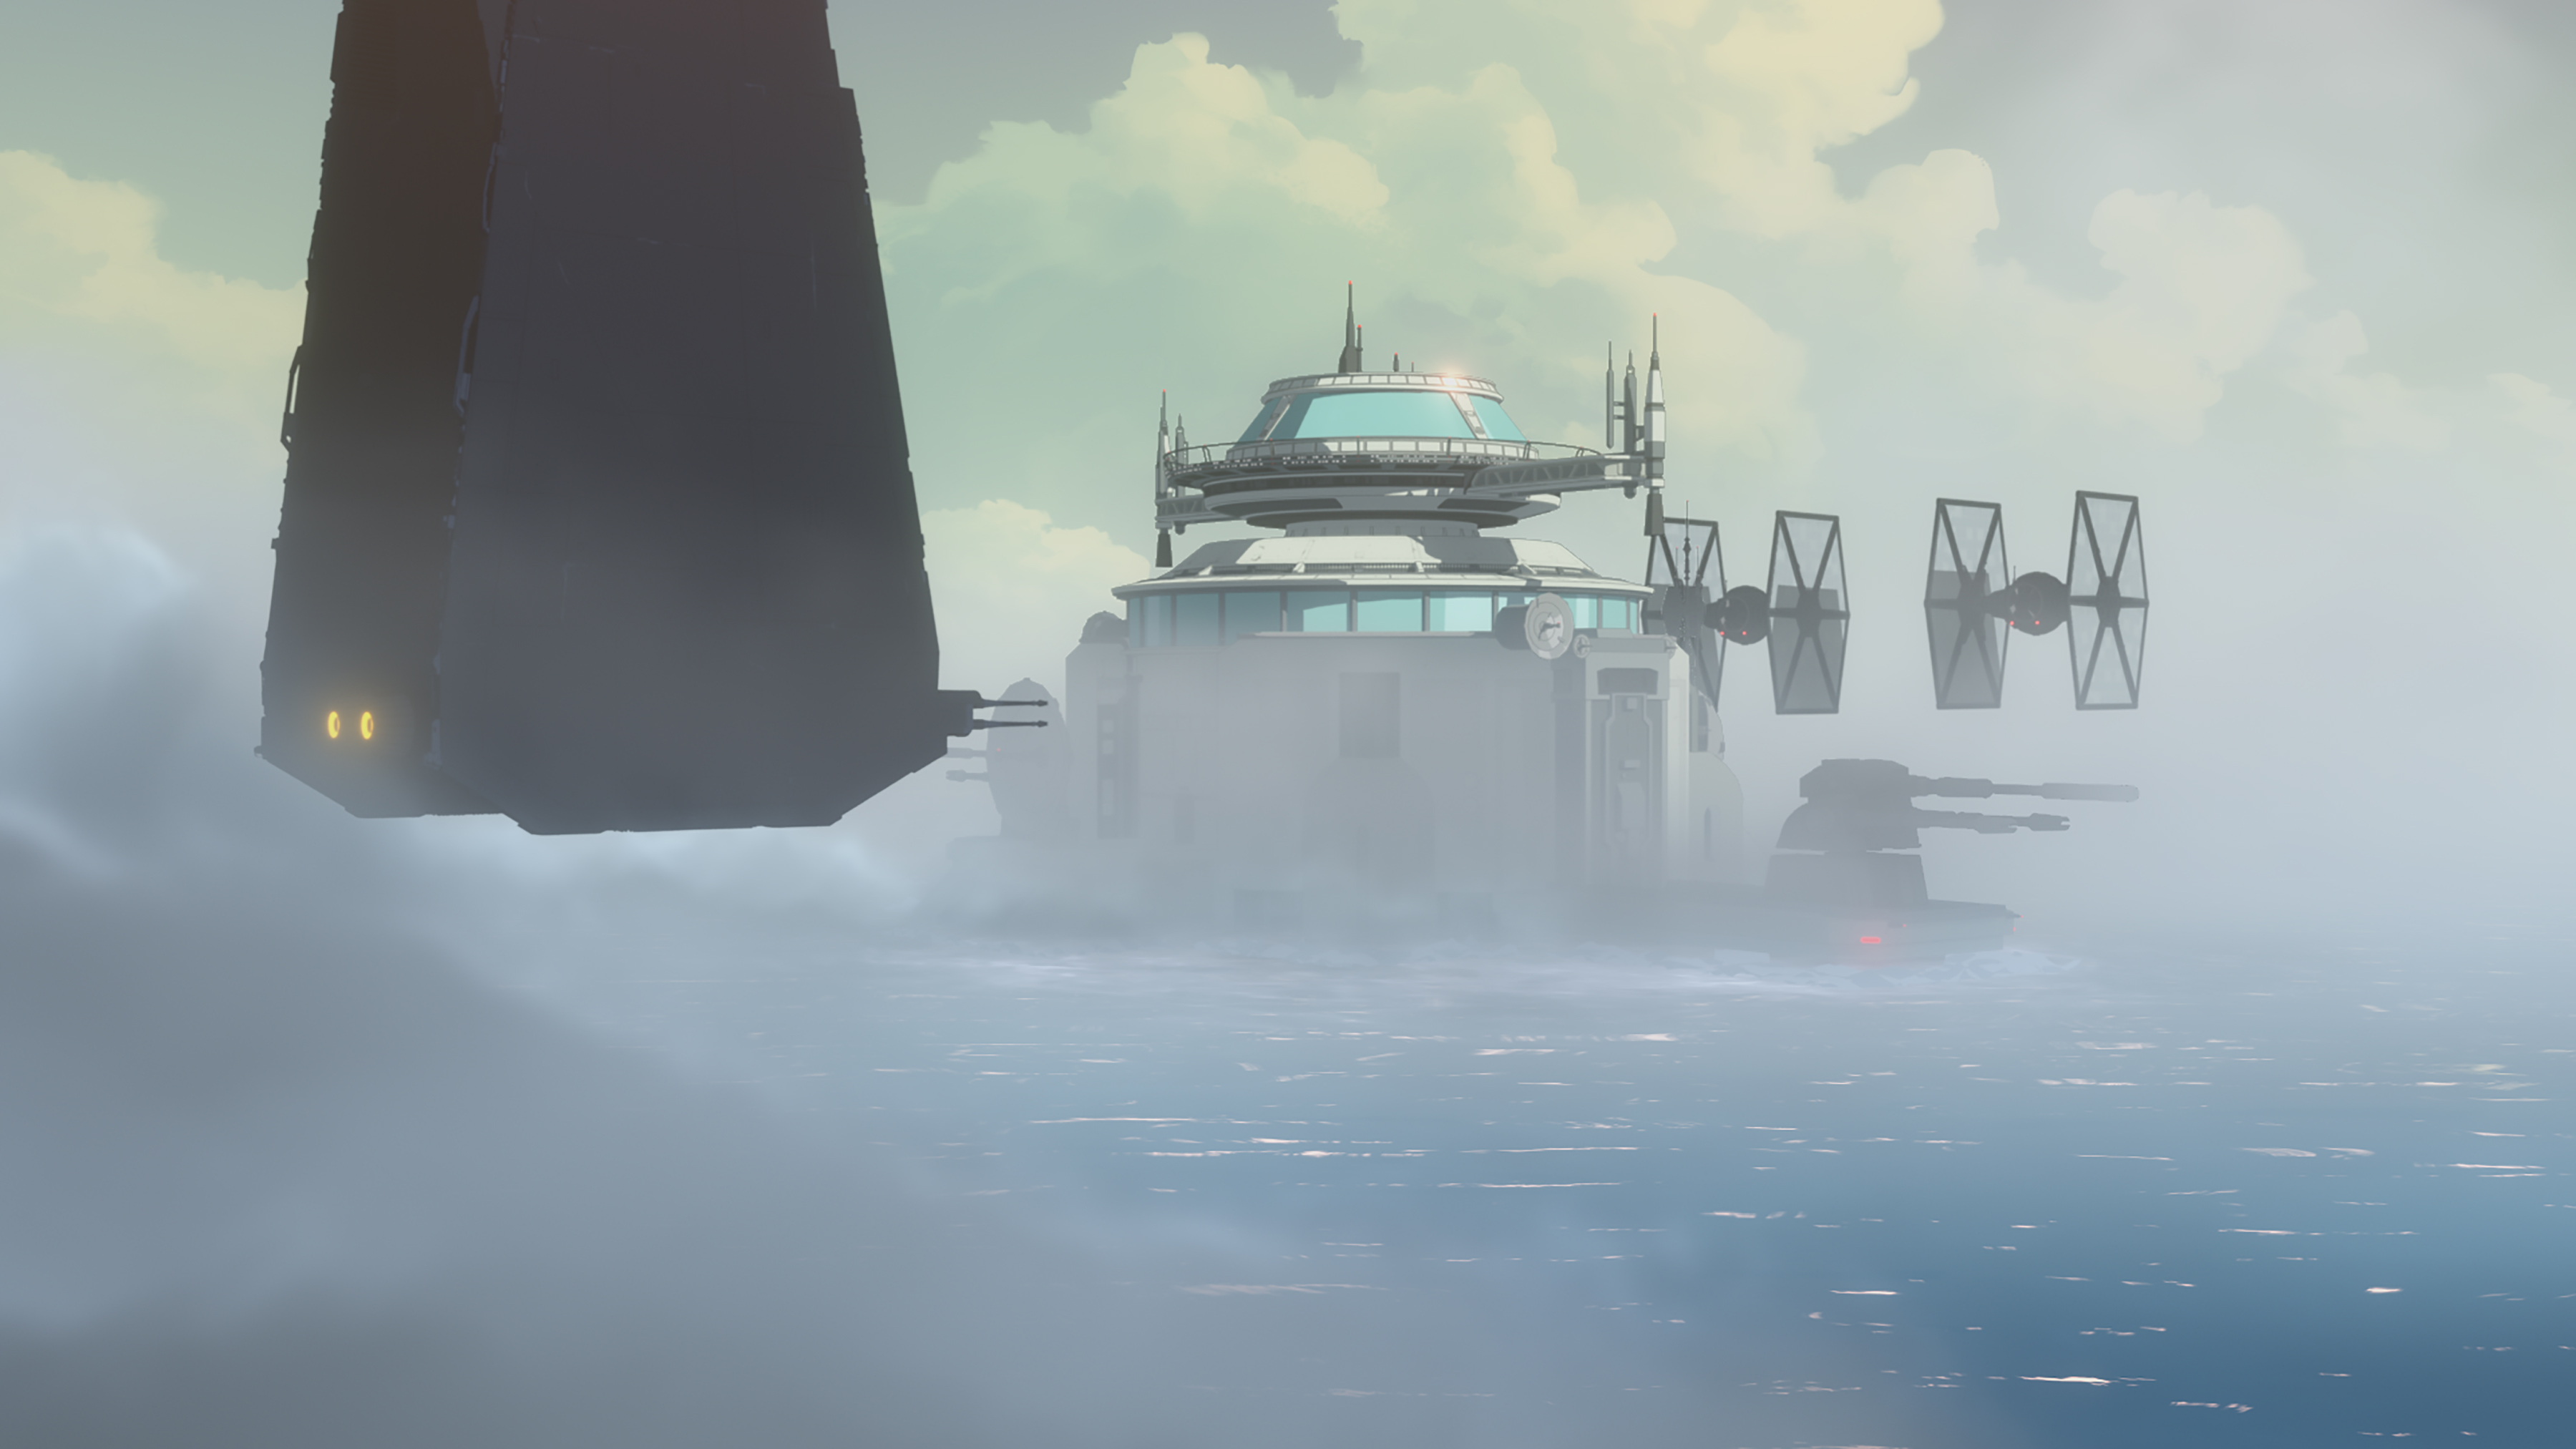 Star Wars Resistance: The Colossus Feels the Full Might of the First Order